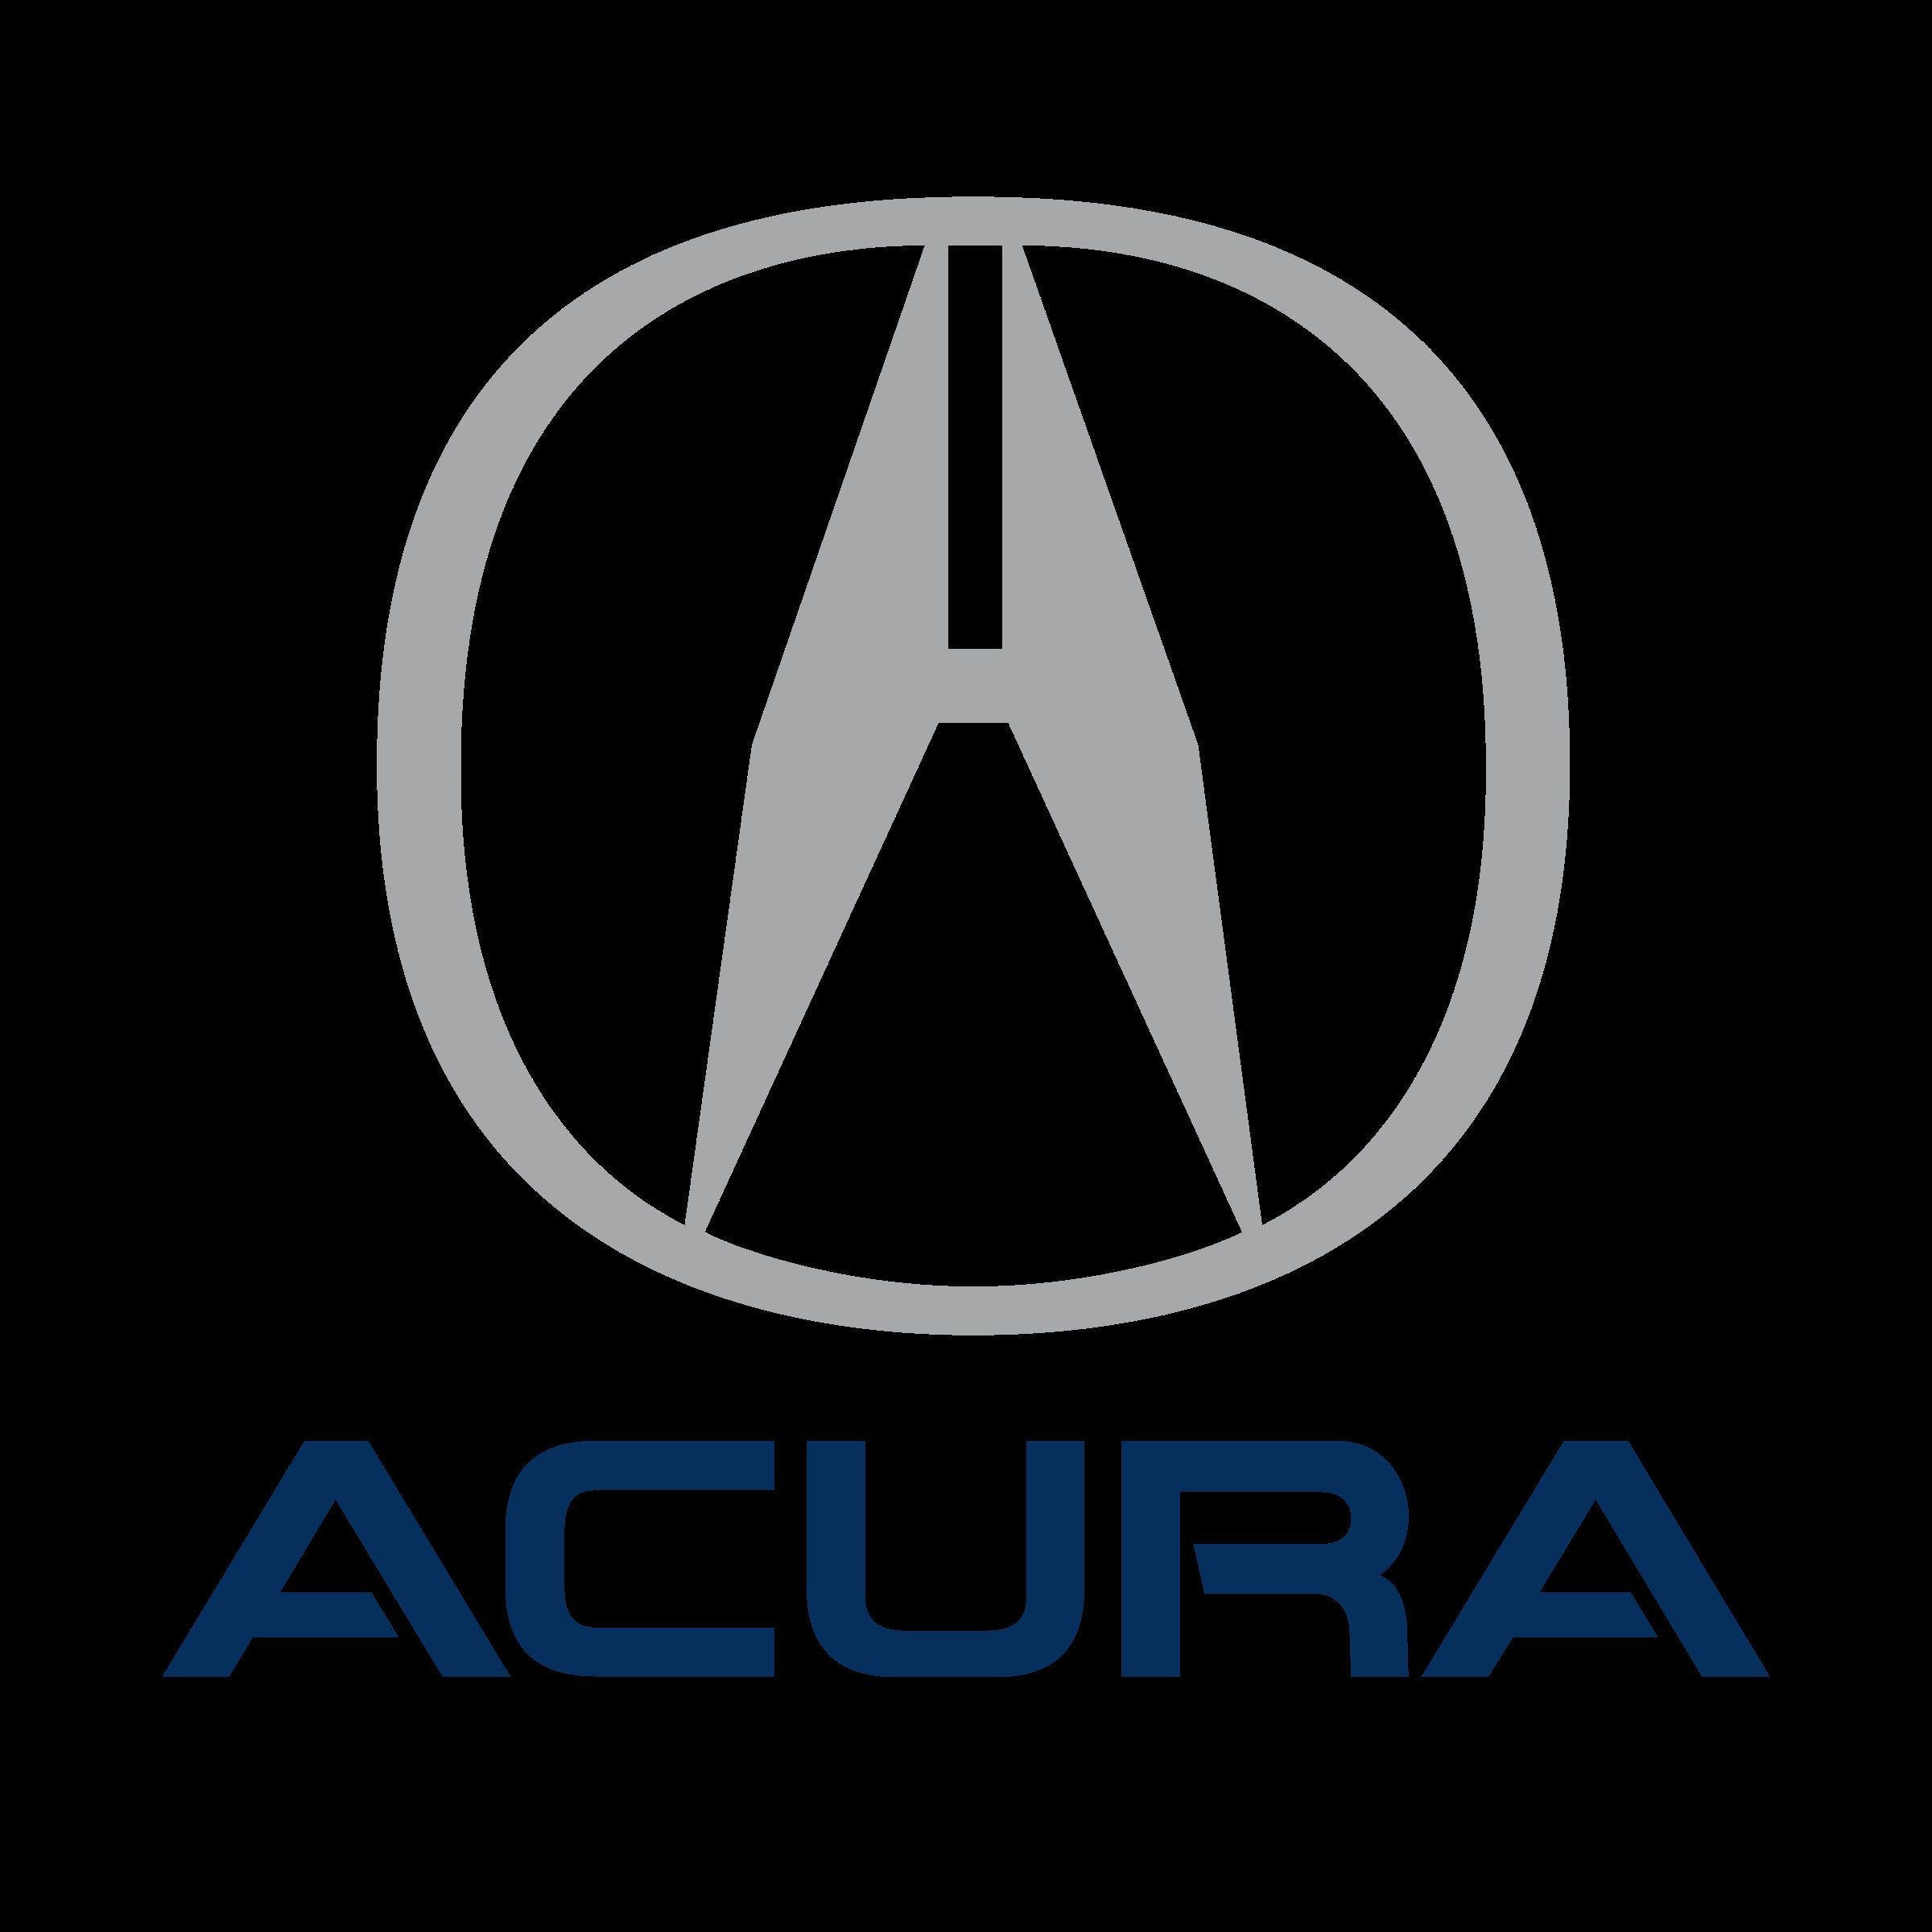 Acura Logo Svg And Png For Cricut And Silhouette Jdm Car Emblem Download In 2021 Car Brands Logos Acura Car Emblem